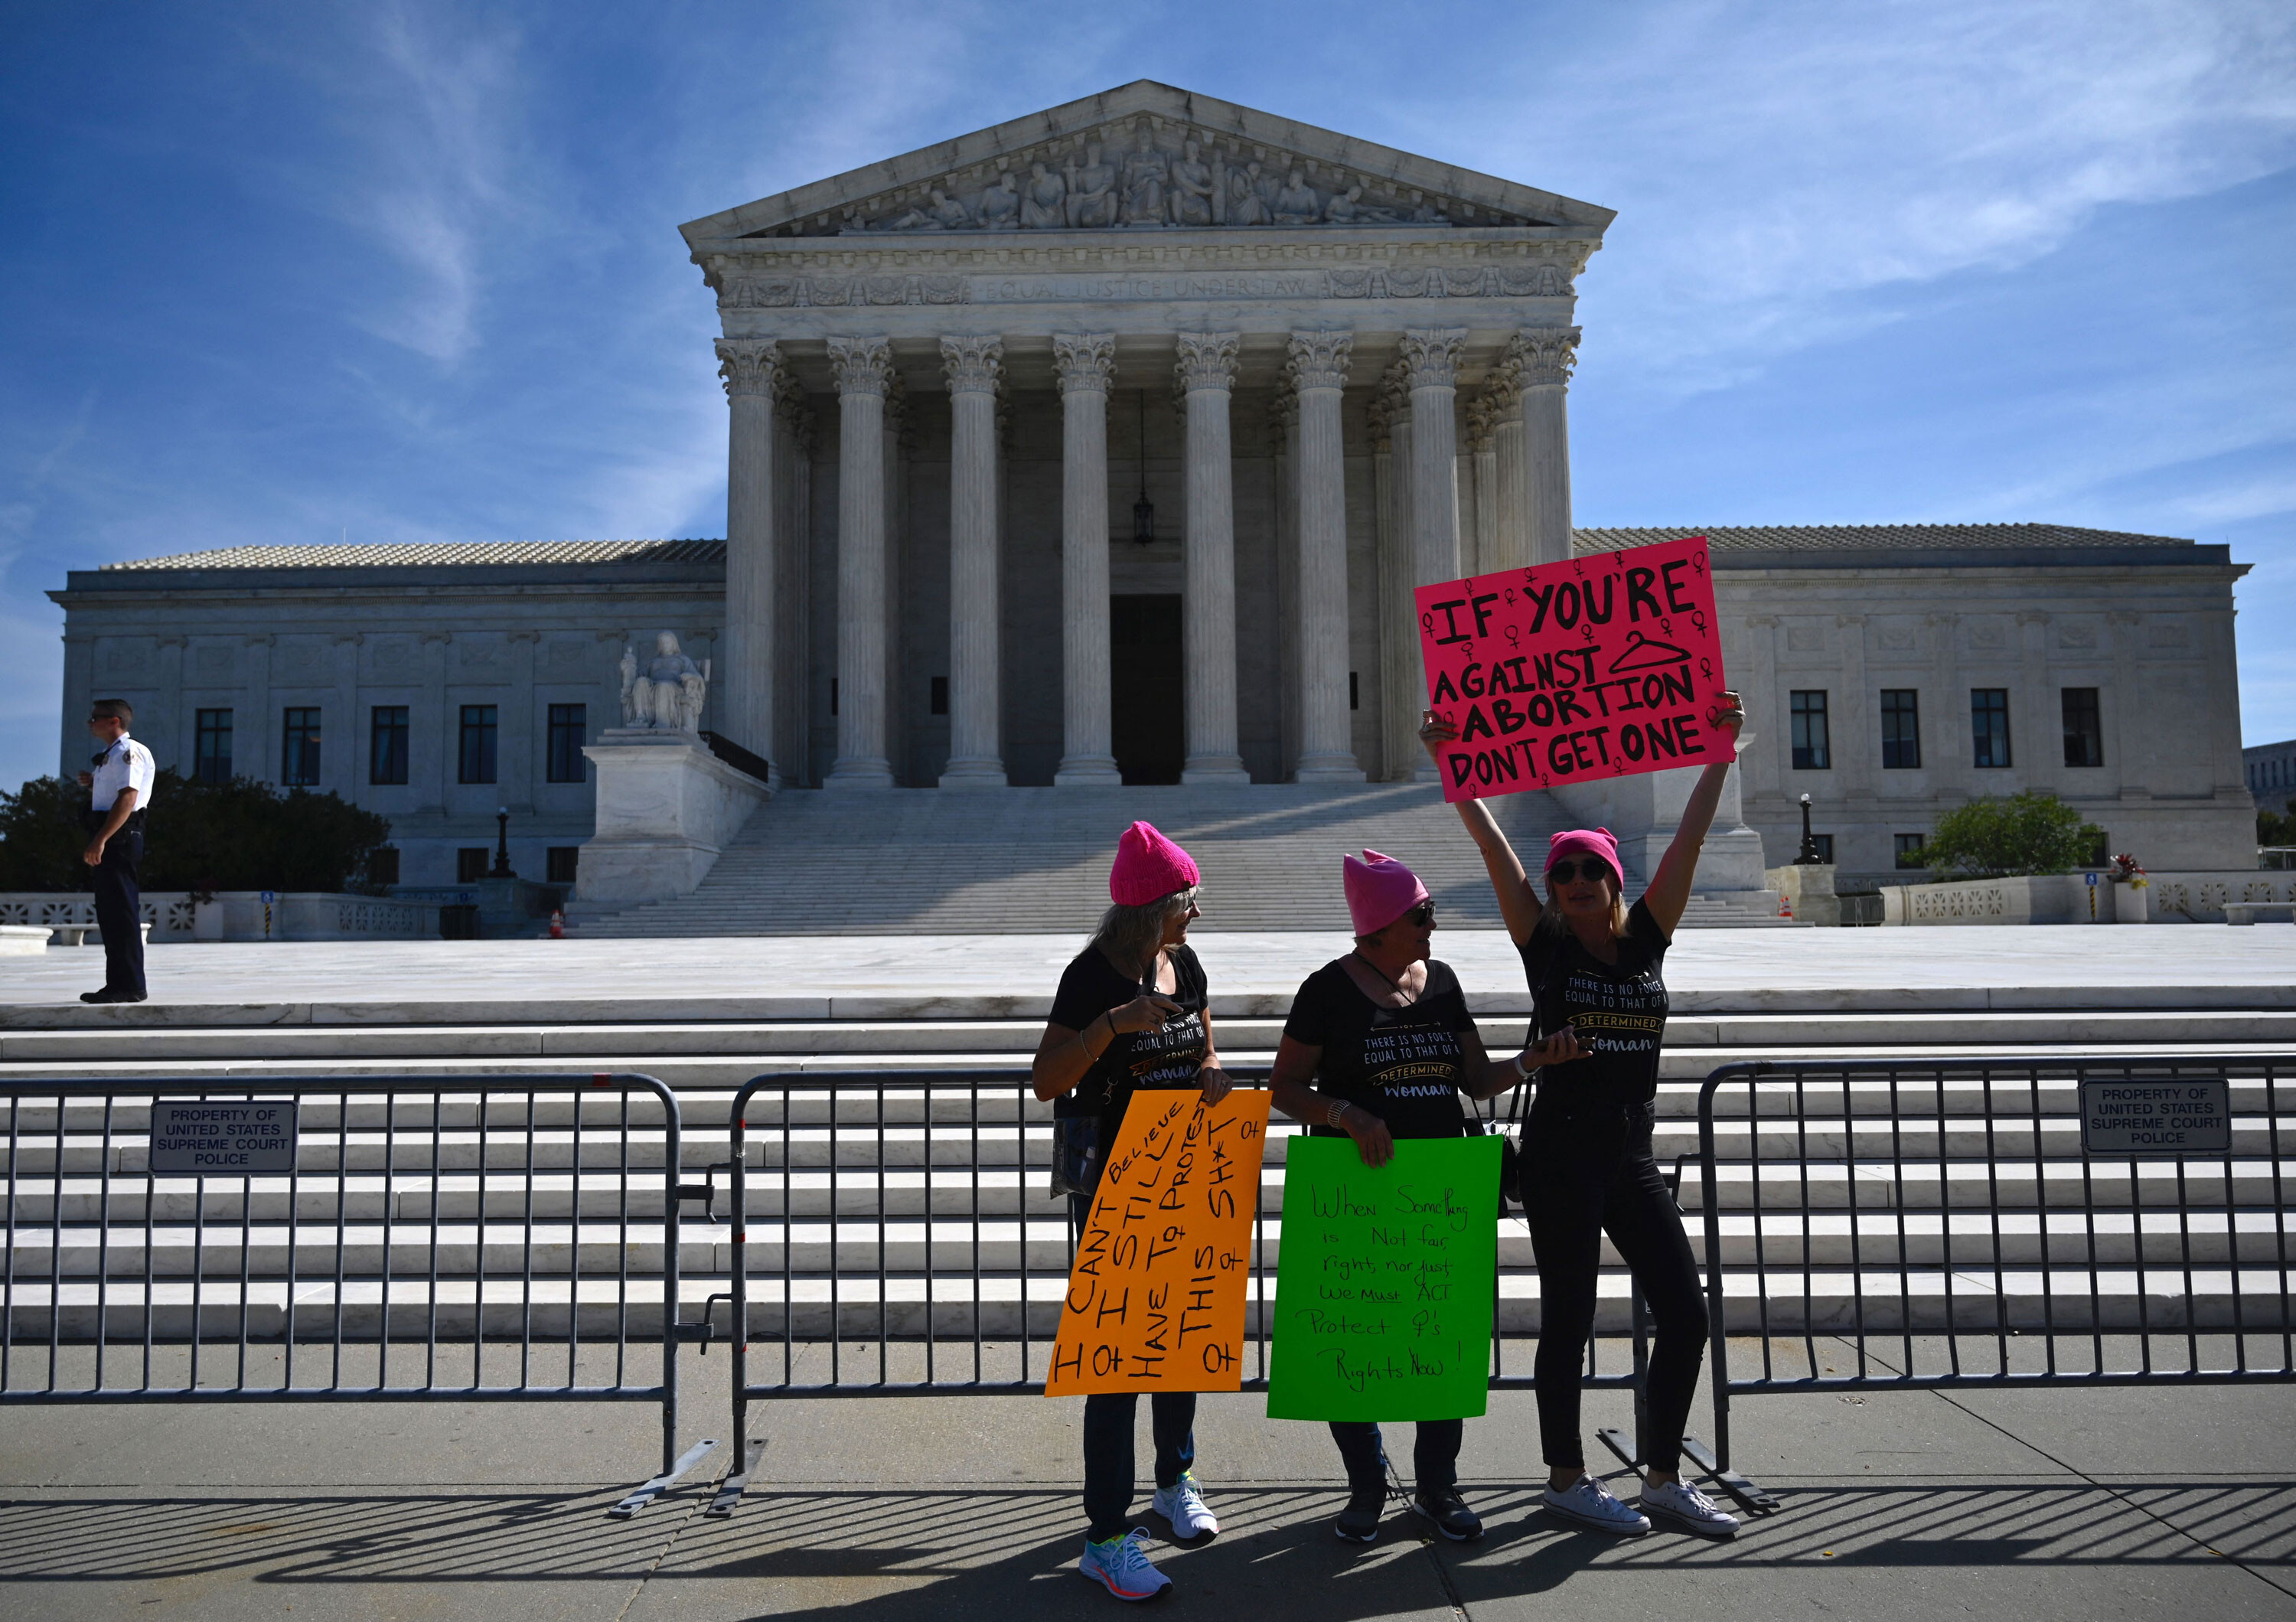 Abortion rights activists rally for abortion justice throughout the country